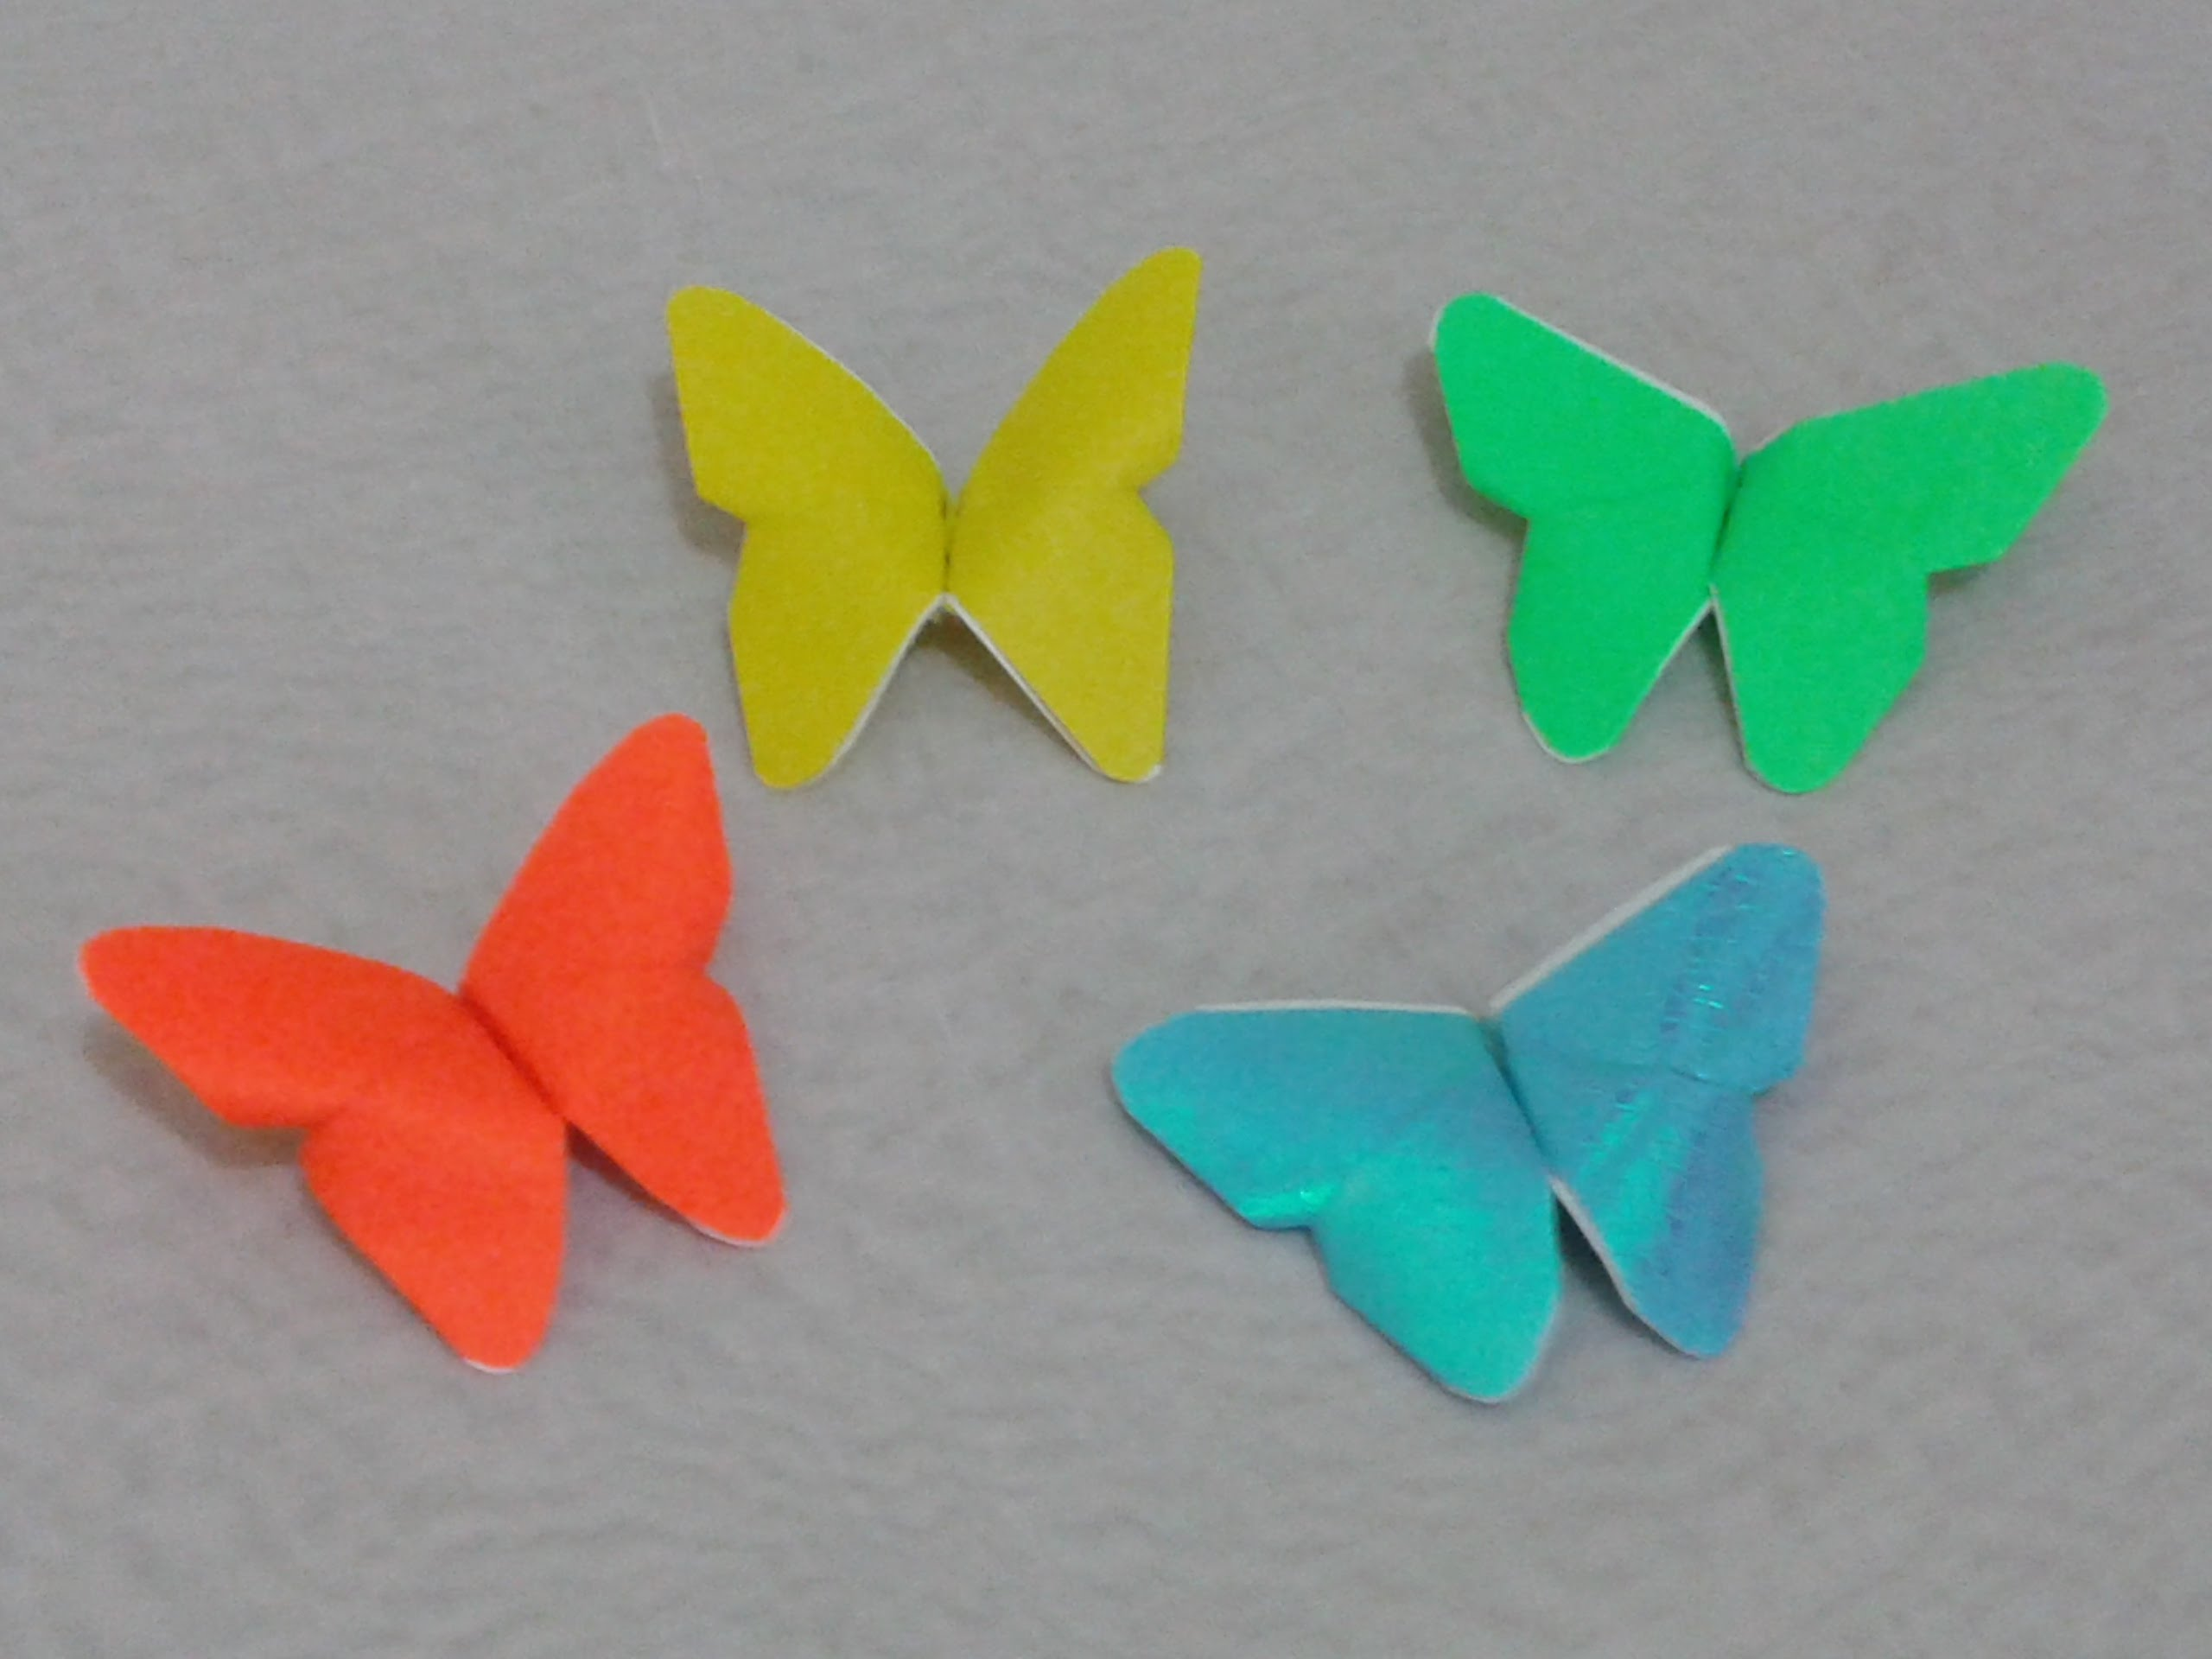 Folded paper origami butterflies